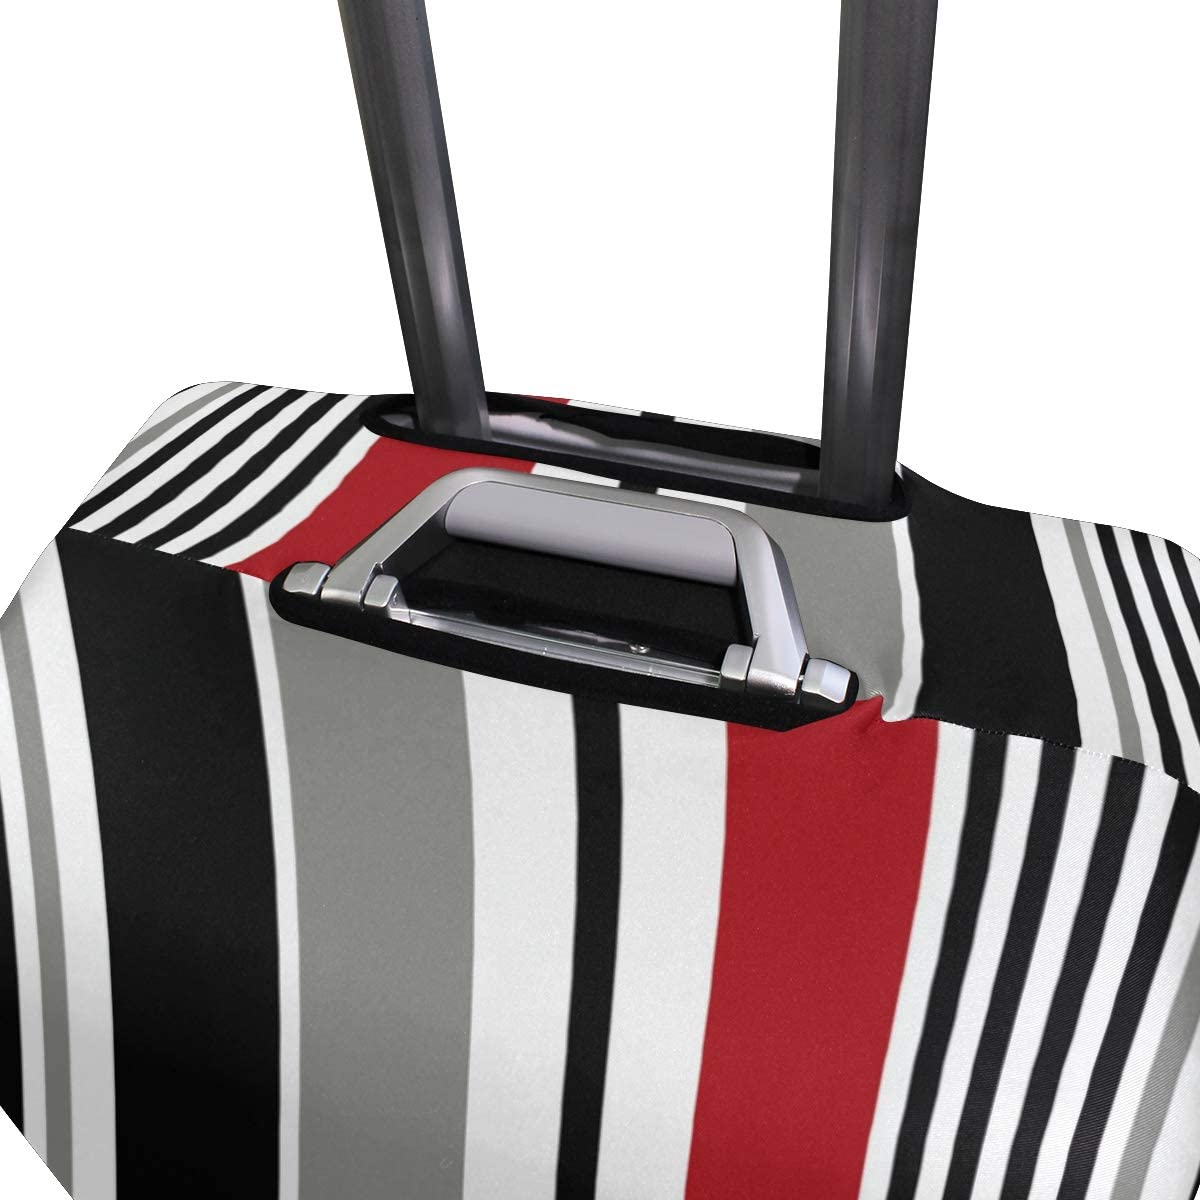 Travel Luggage Cover Black Stripe Red White Grey Vertical Suitcase Protector